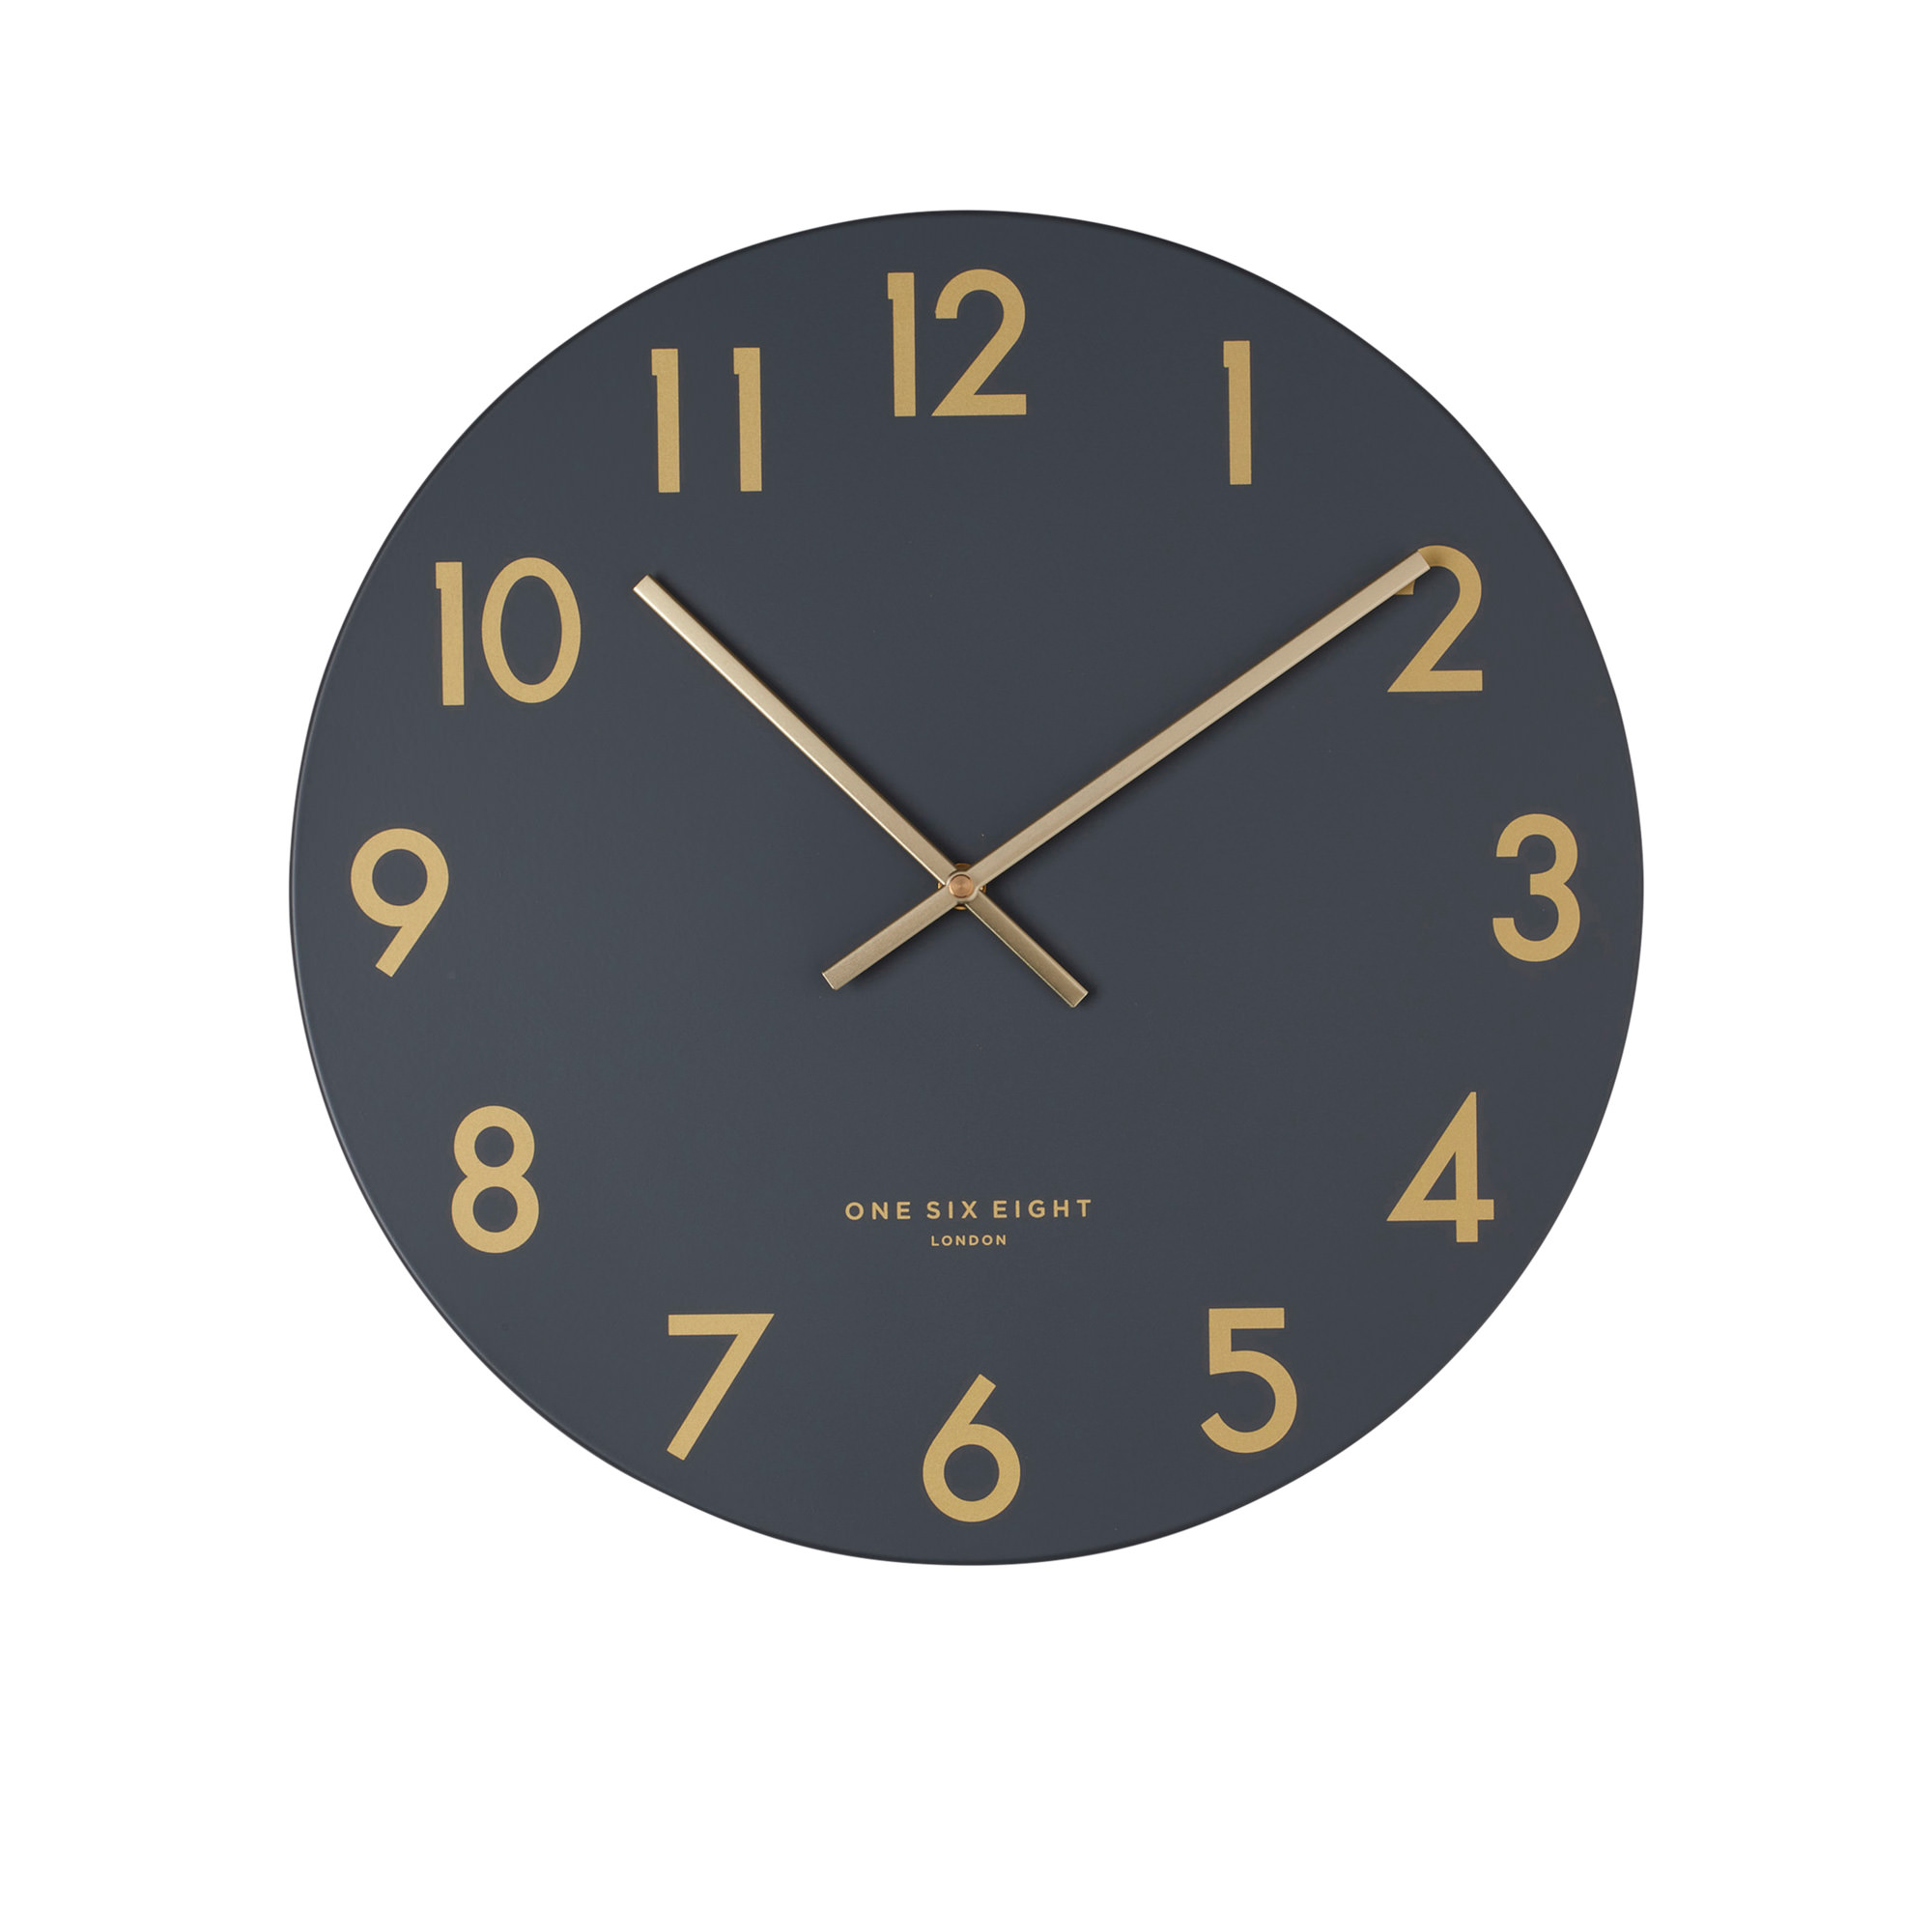 One Six Eight London Jones Silent Wall Clock 30cm Charcoal Grey